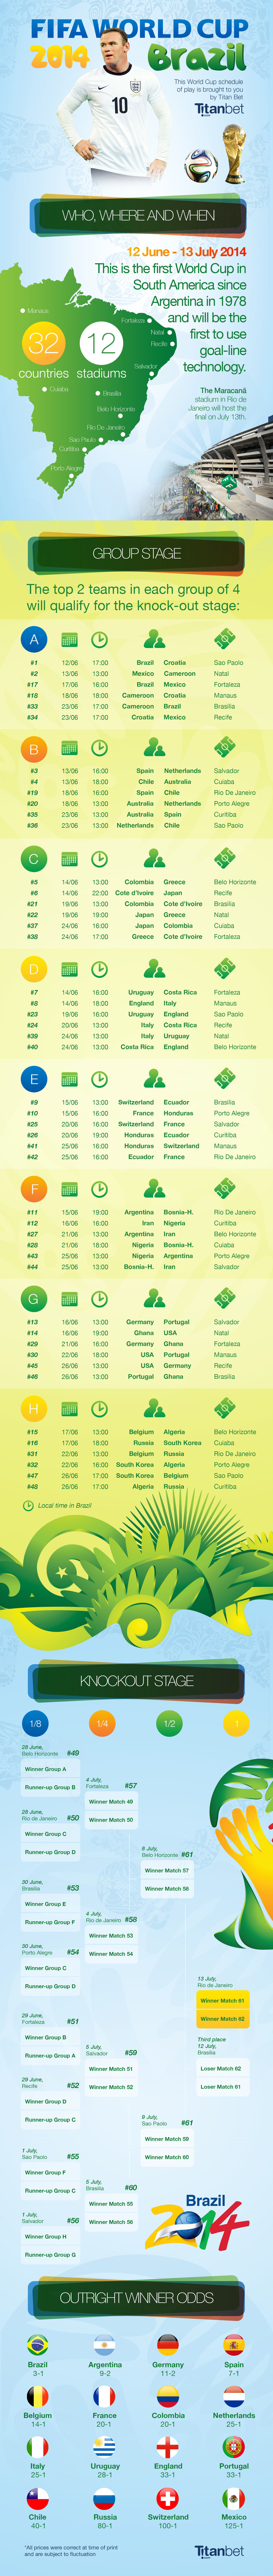 2014 World Cup Draw Infographic Infographic